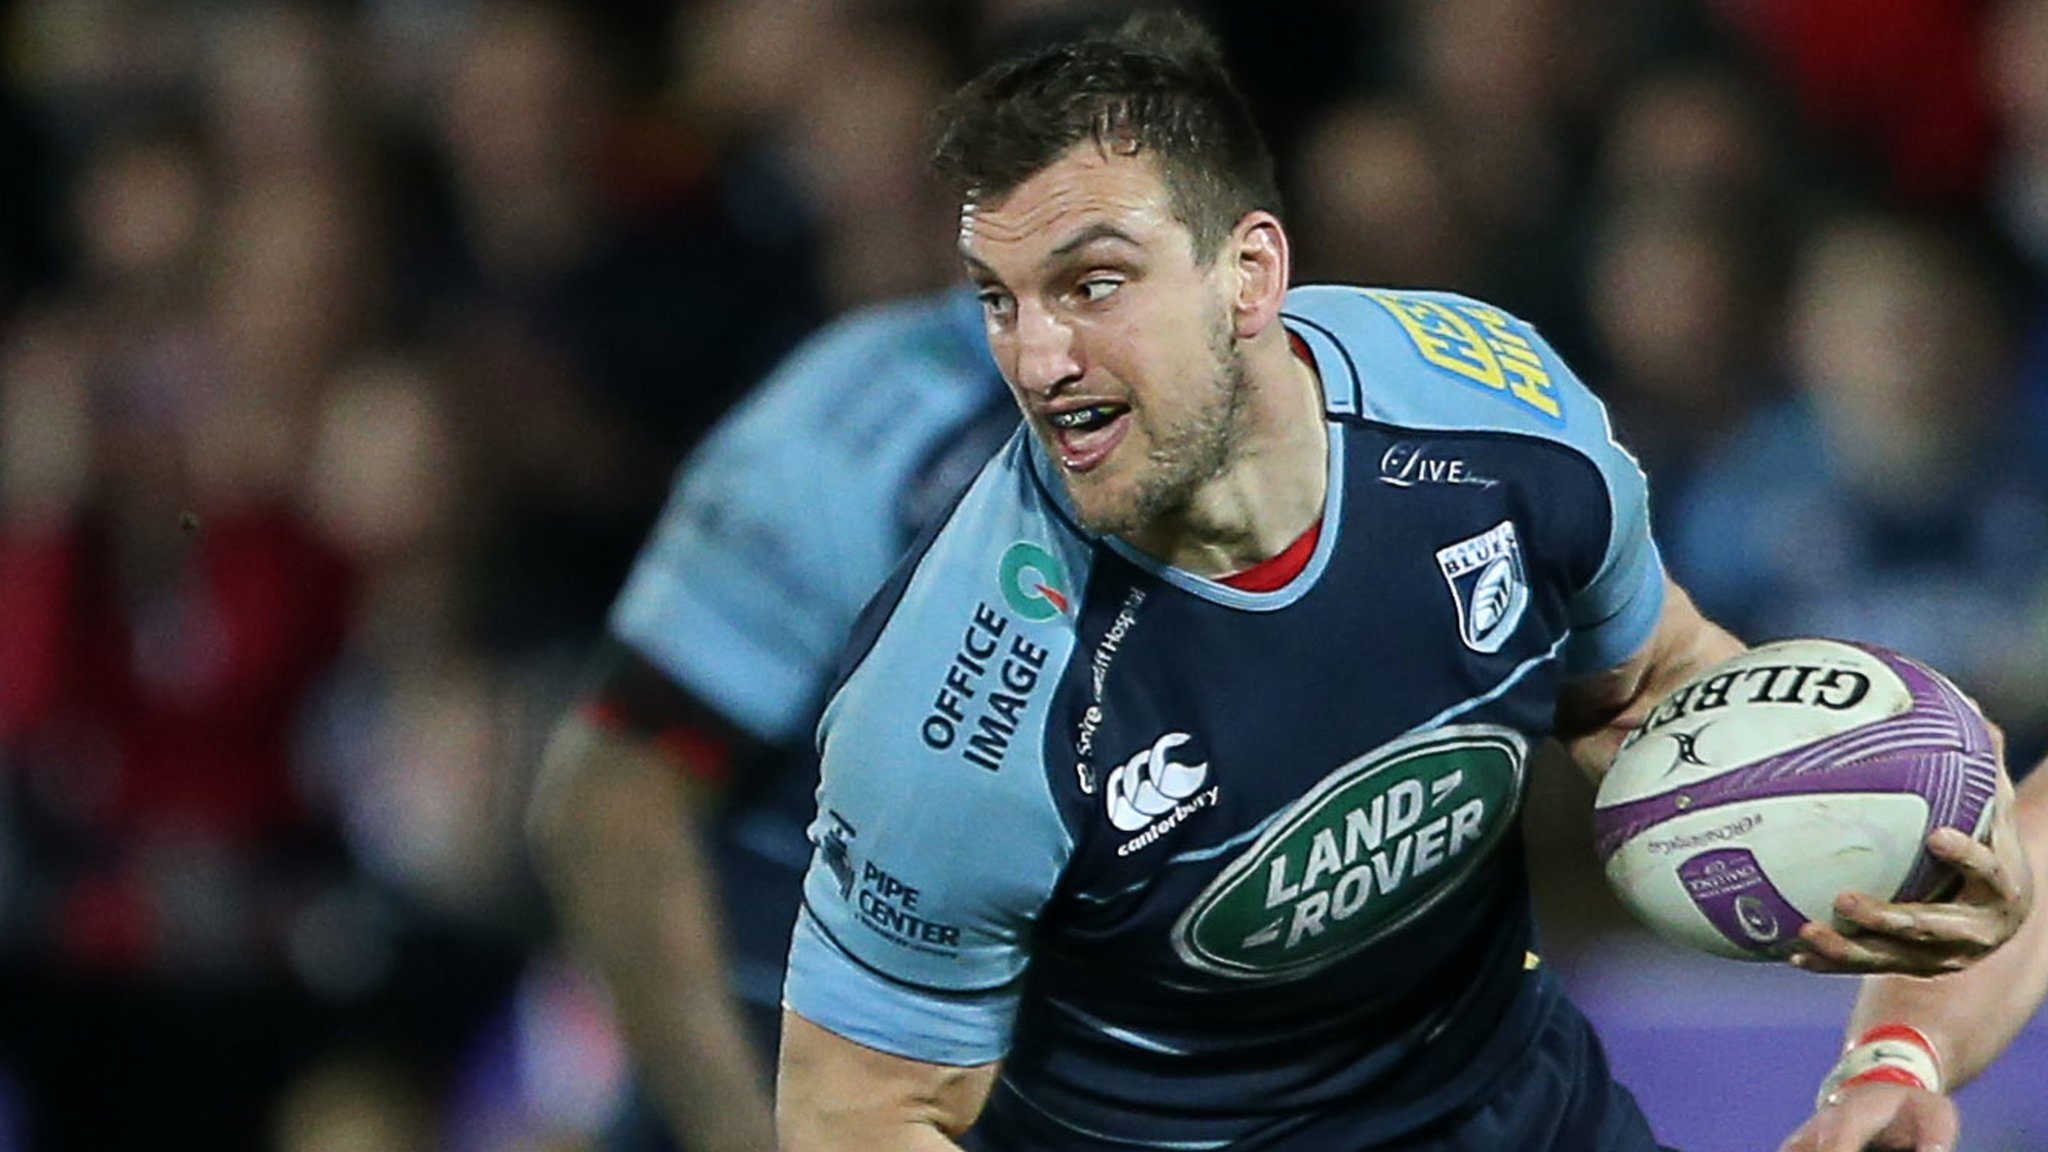 Sam Warburton: New Cardiff Blues coach aims to help Wales flanker improve